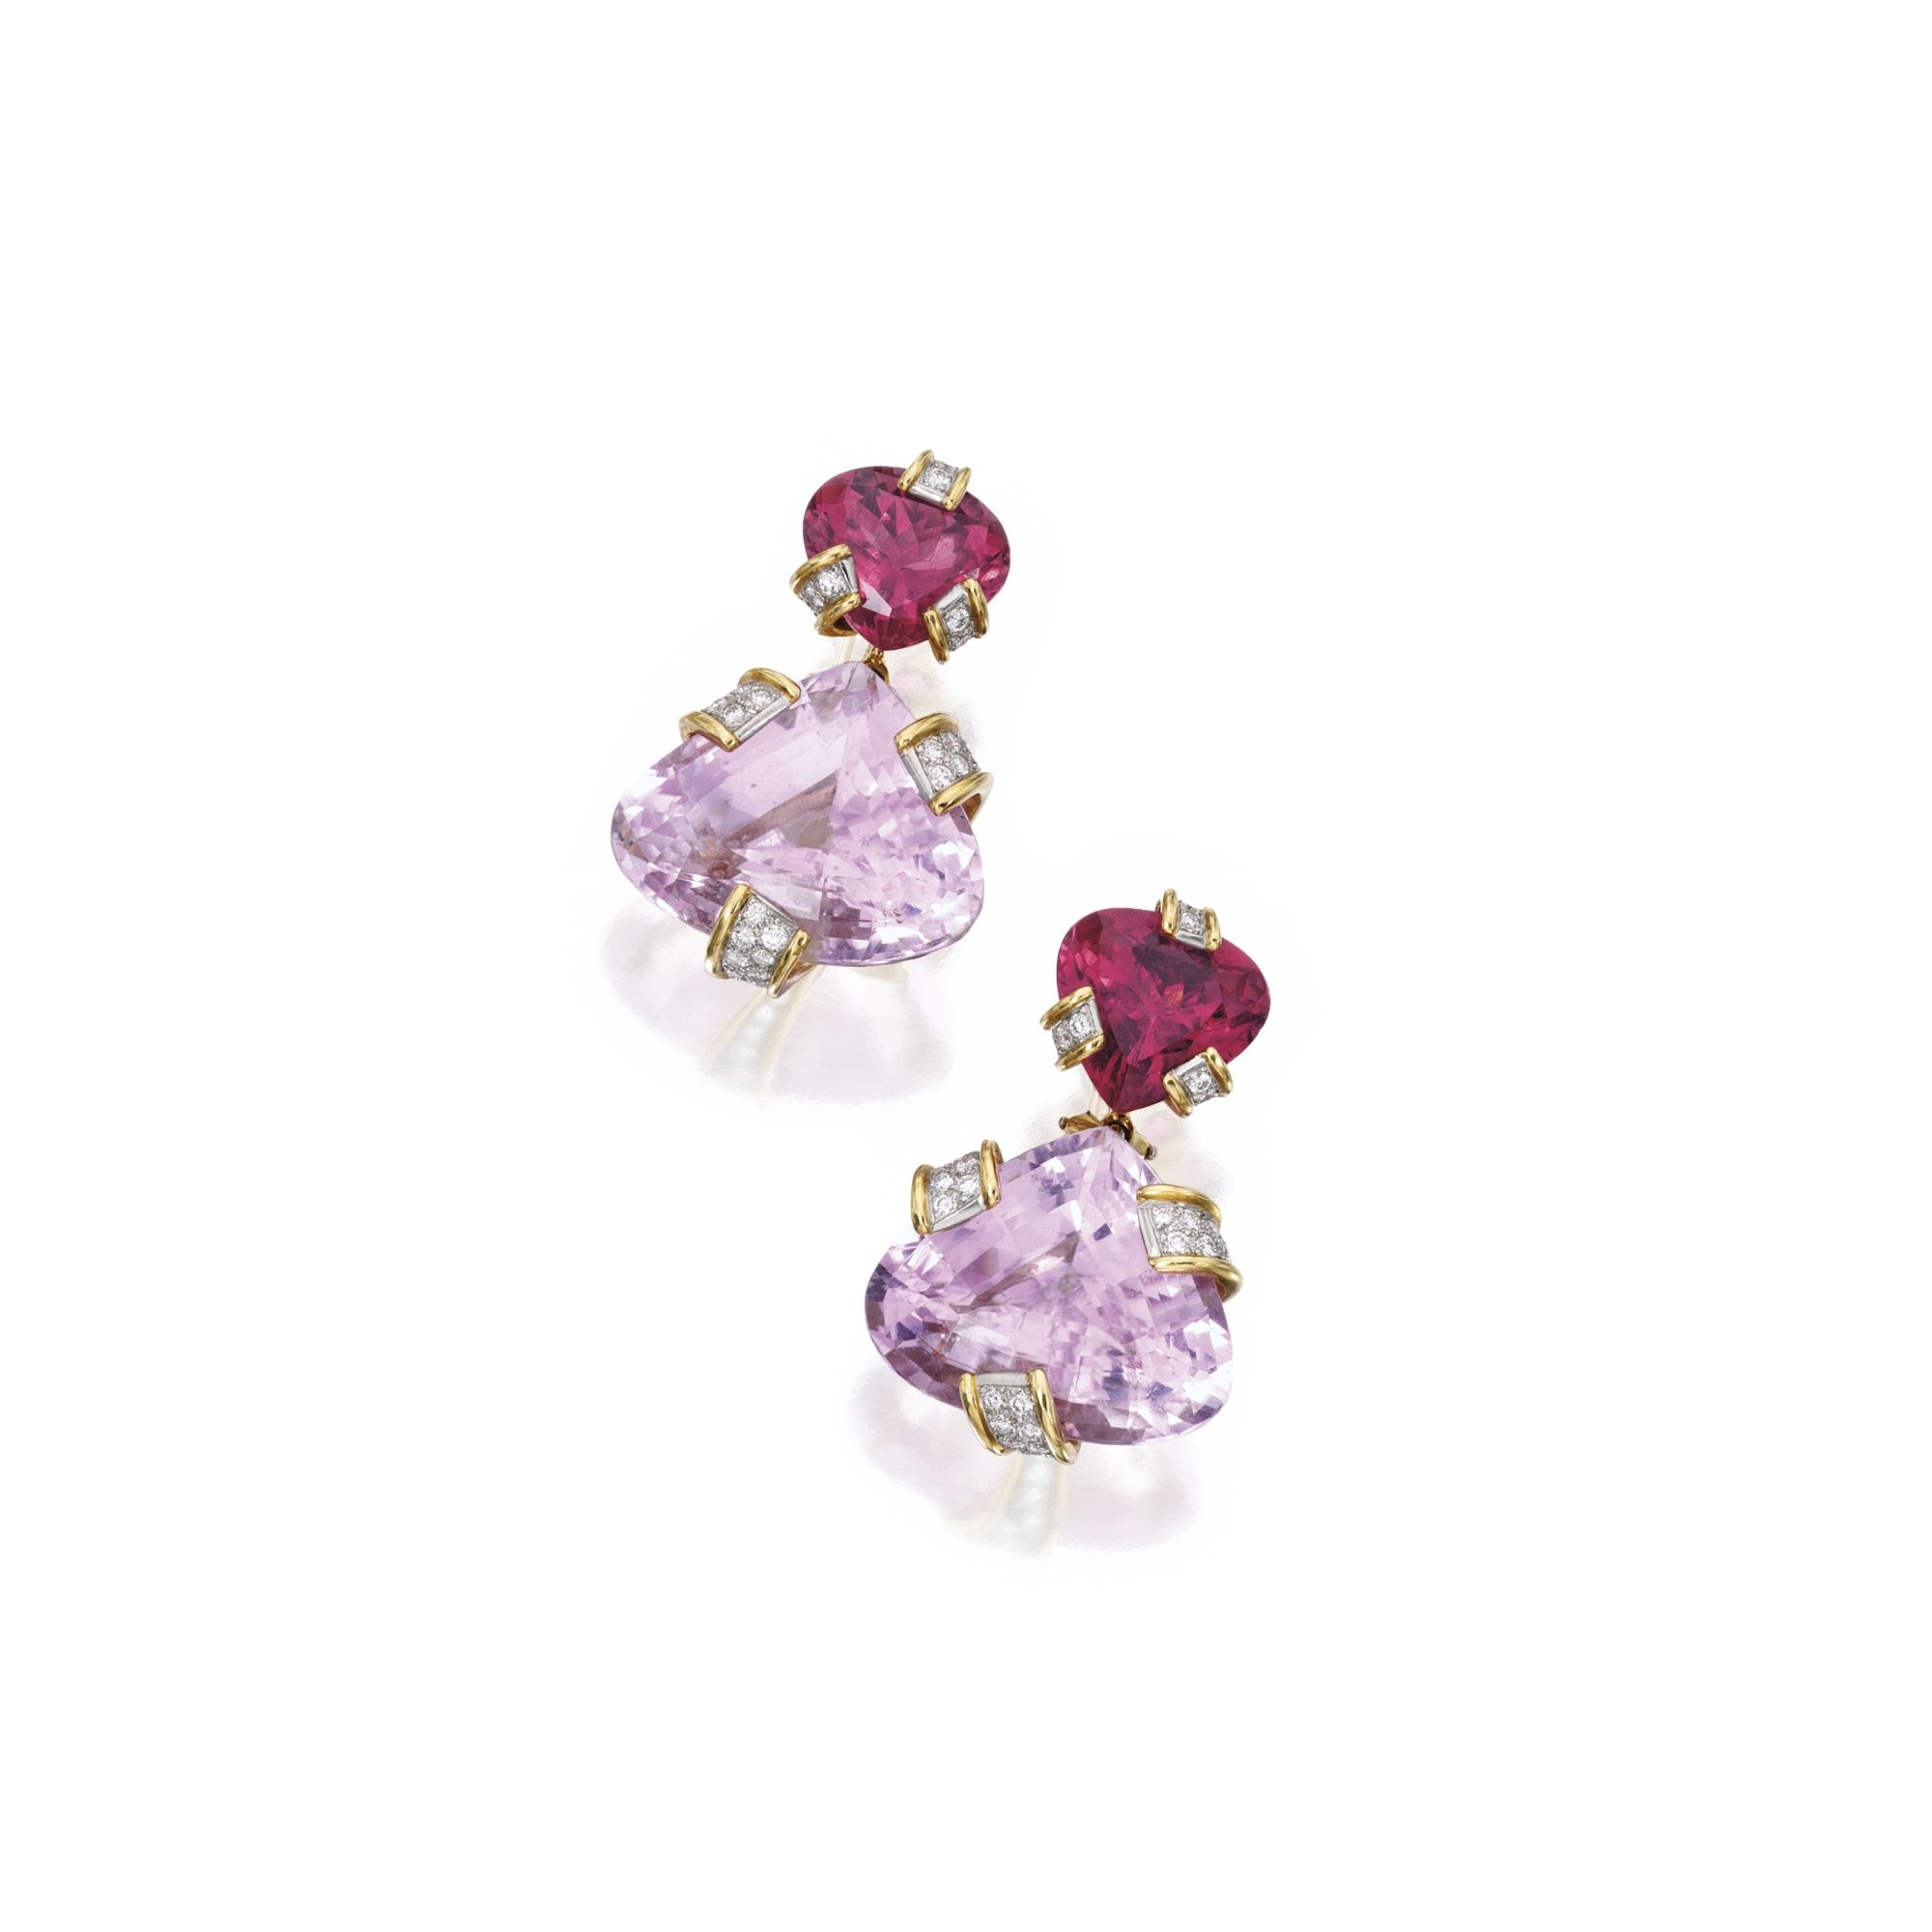 and around off diamonds kunzite highlighted amethyst pin earrings margherita by one burgener piece all